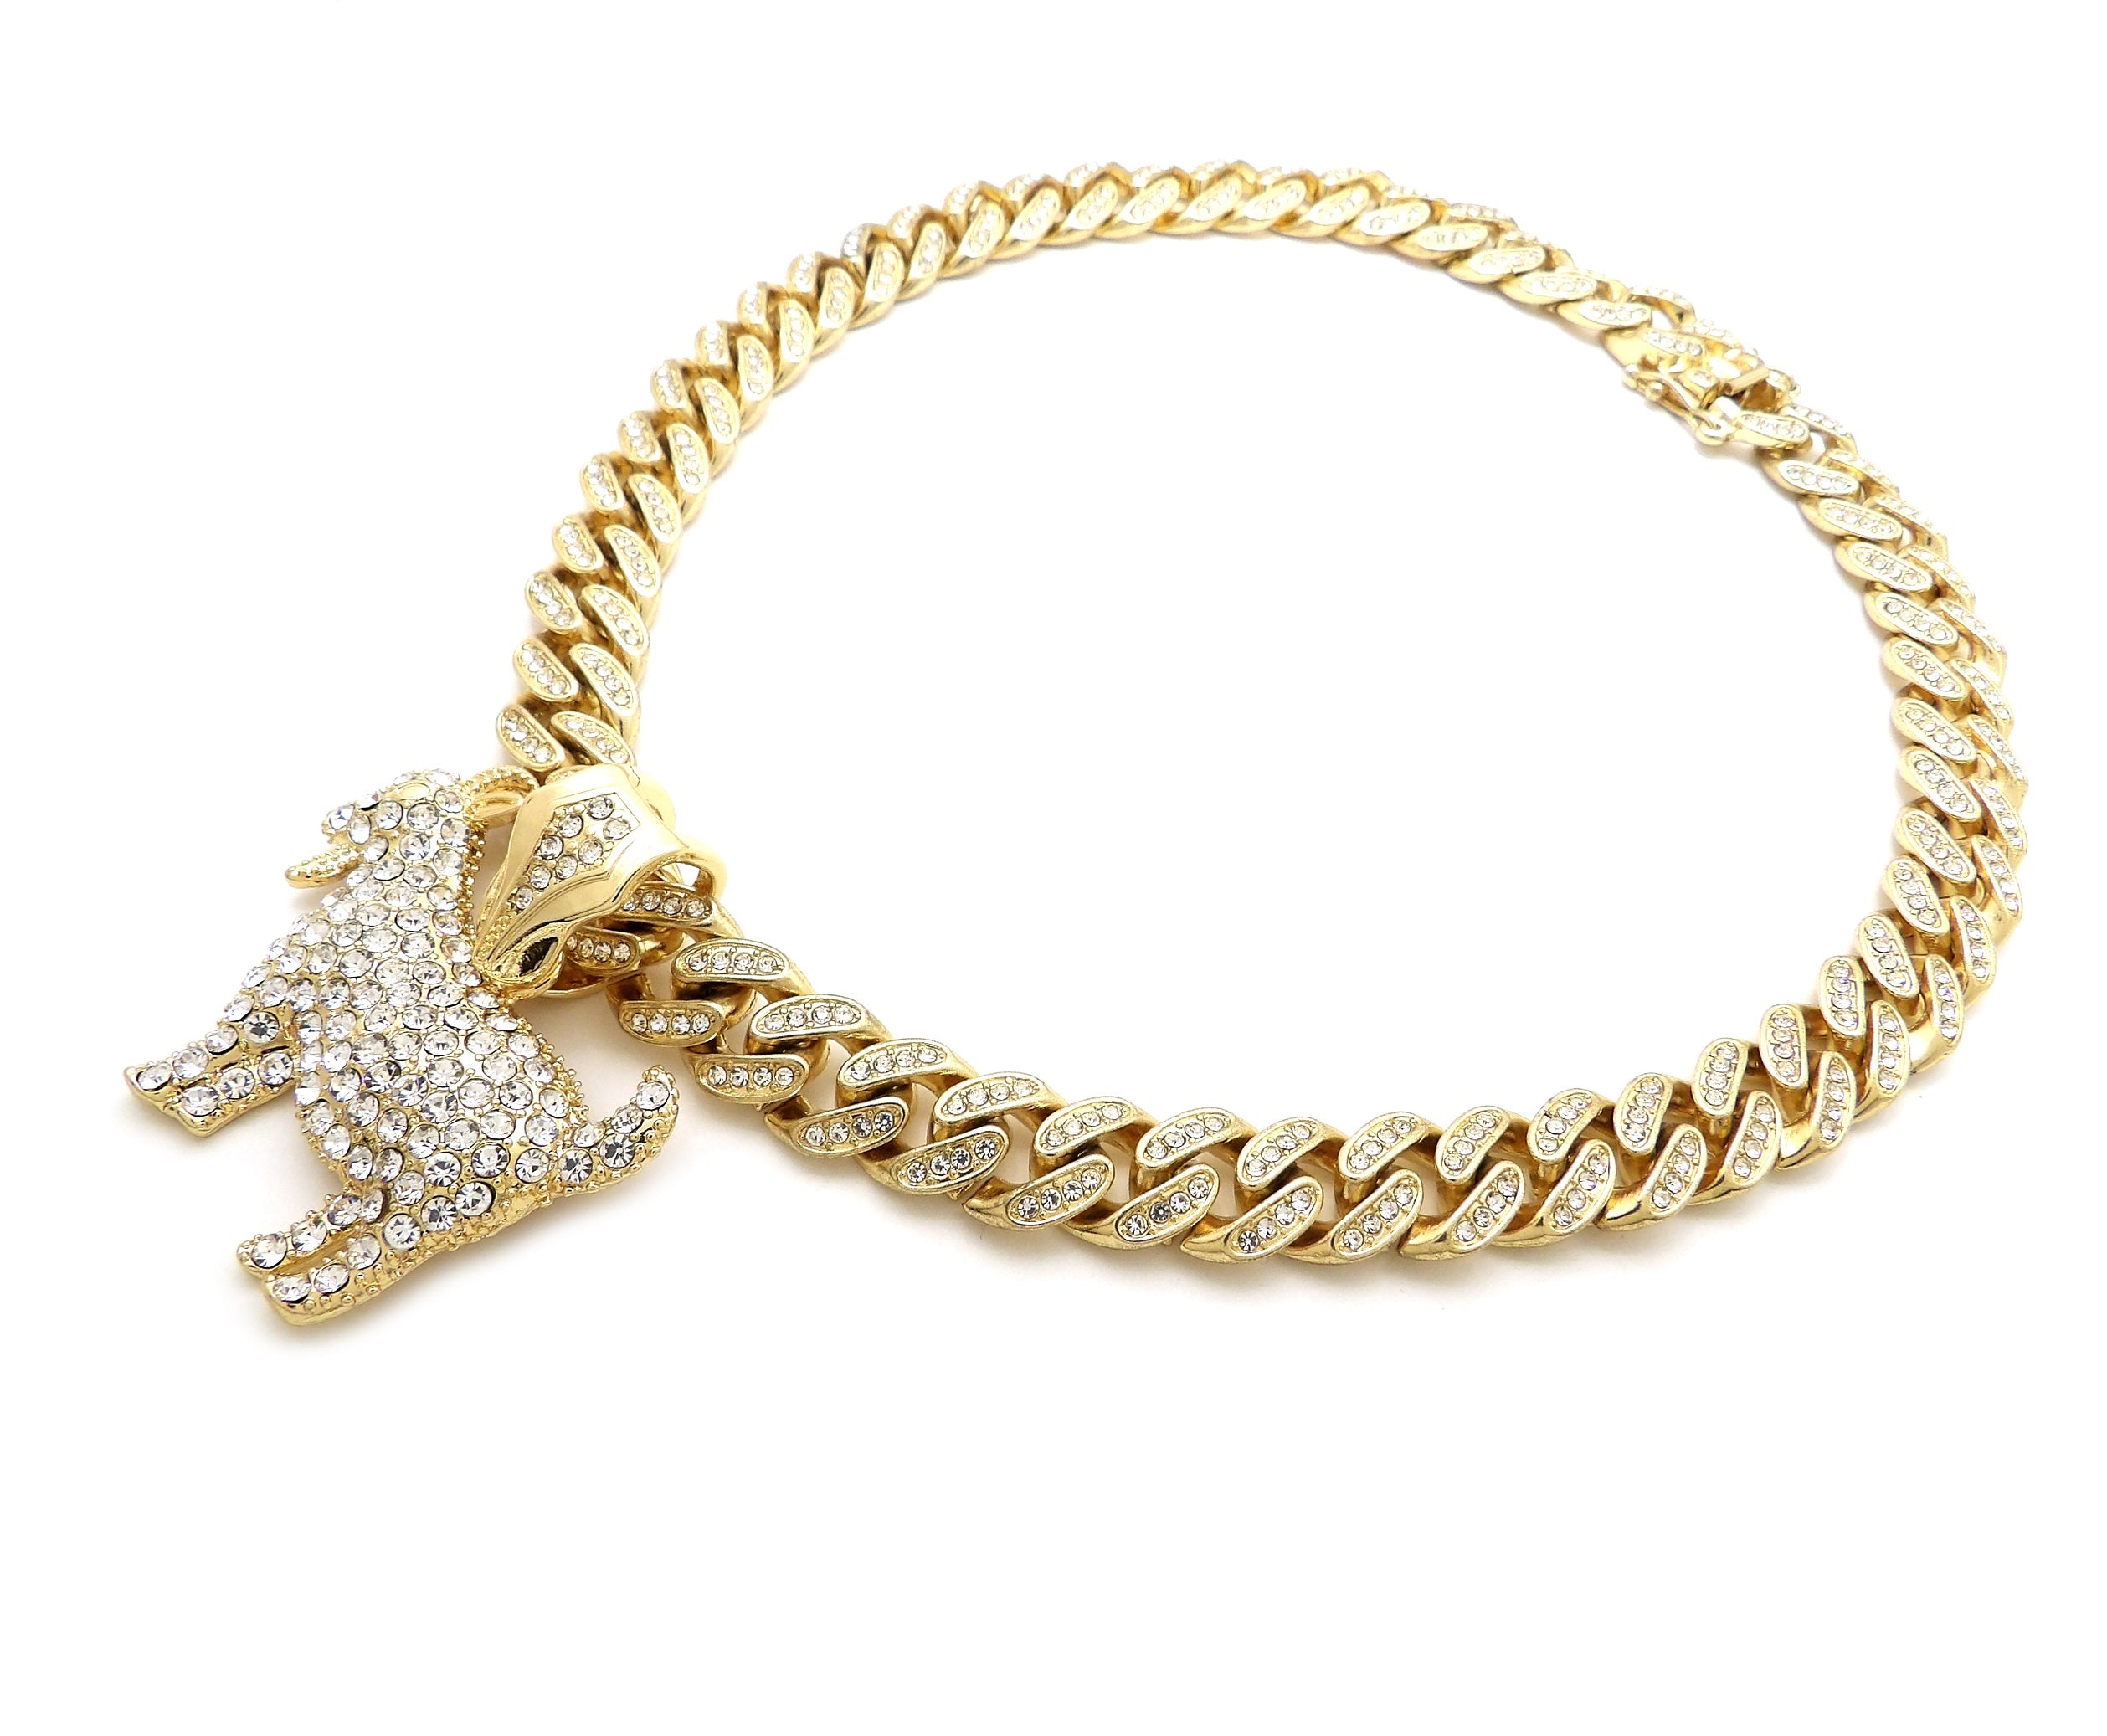 14K Iced Out Goat Necklace On Cuban Link